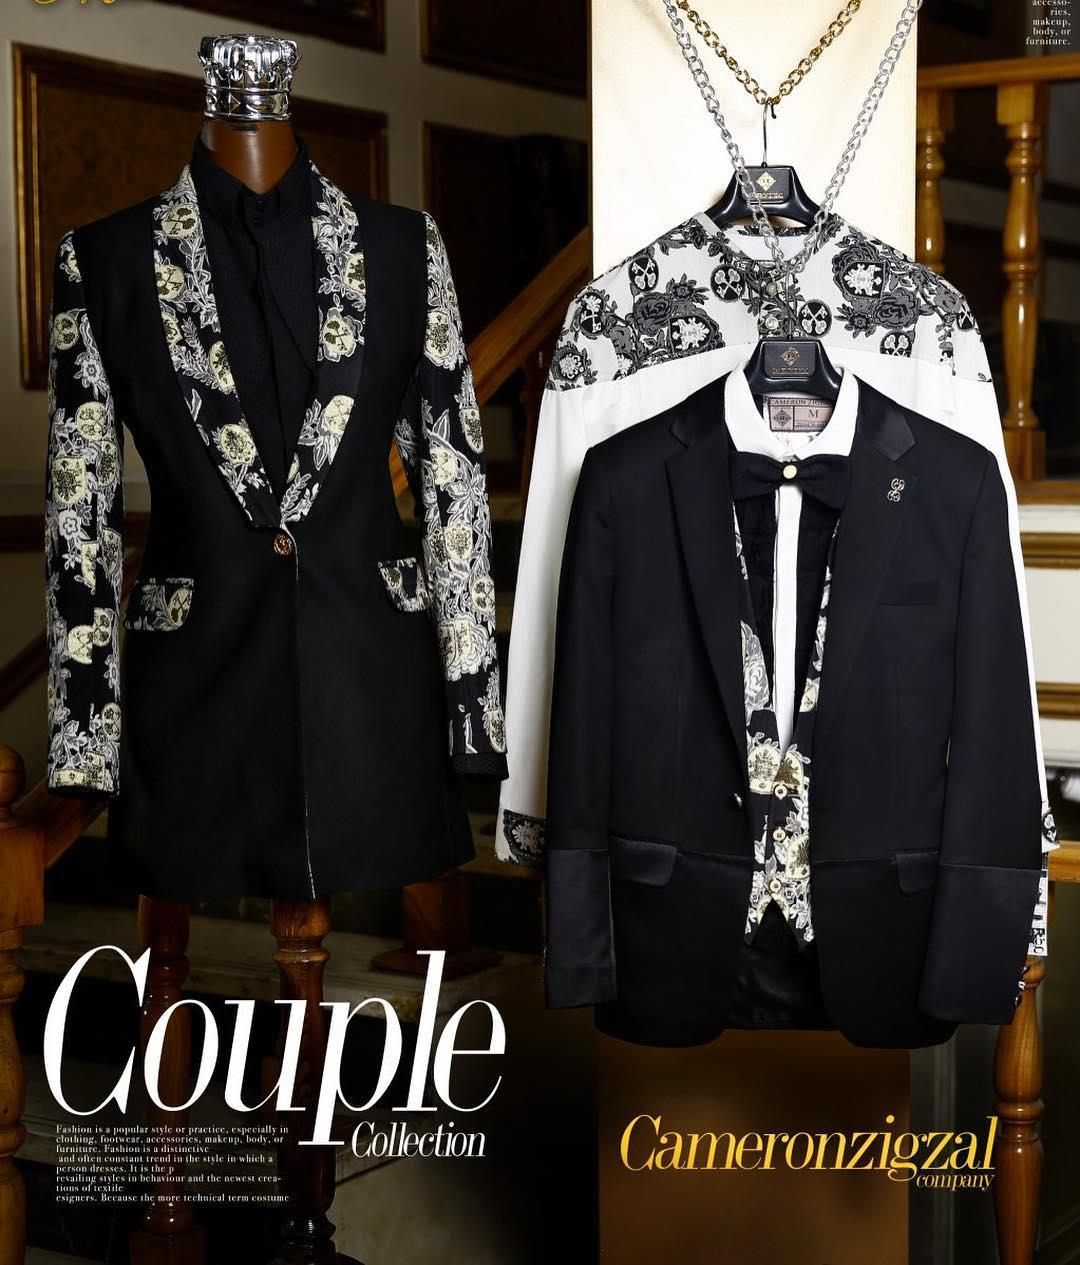 Couples collection Showroom: